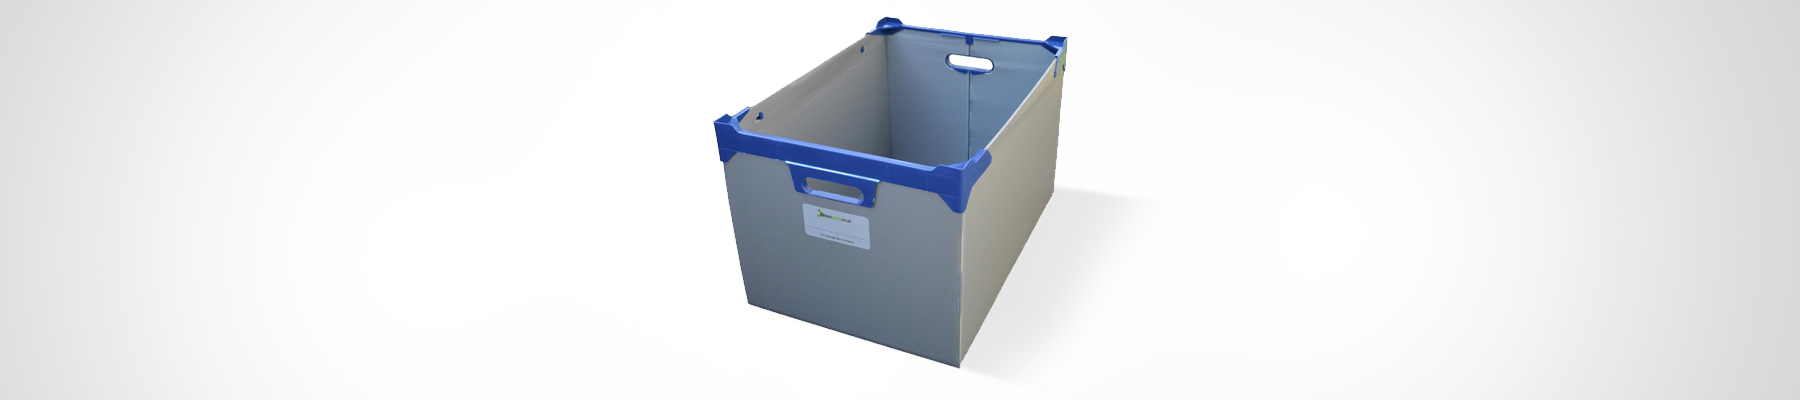 Correx Storage Box, Archive Box, Paperwork Box